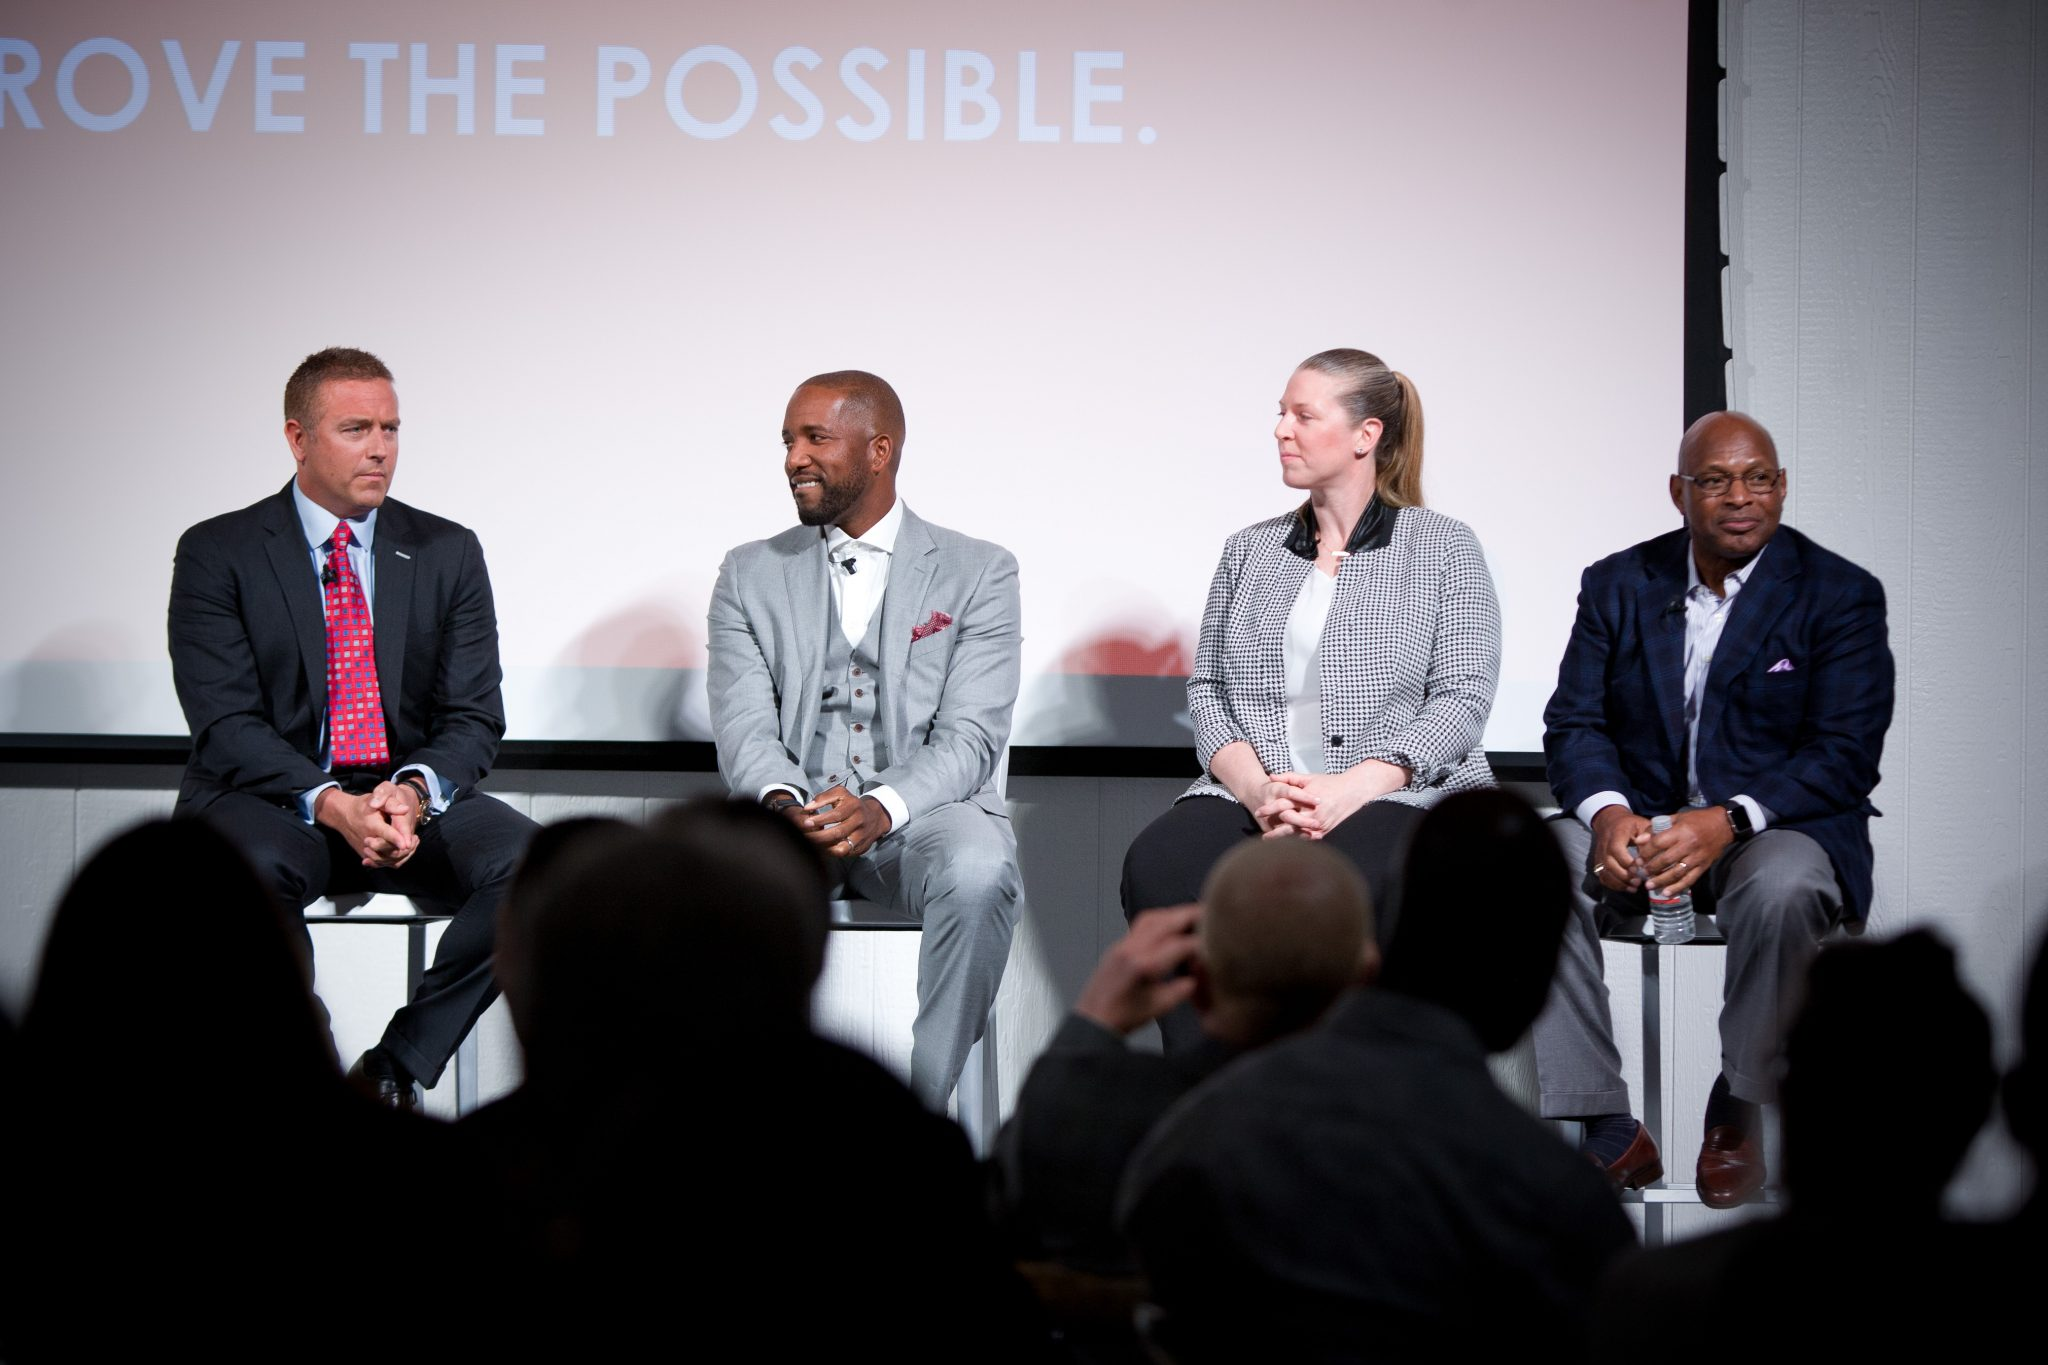 Kirk Herbstreit, Michael Redd, Katie Smith and Archie Griffin